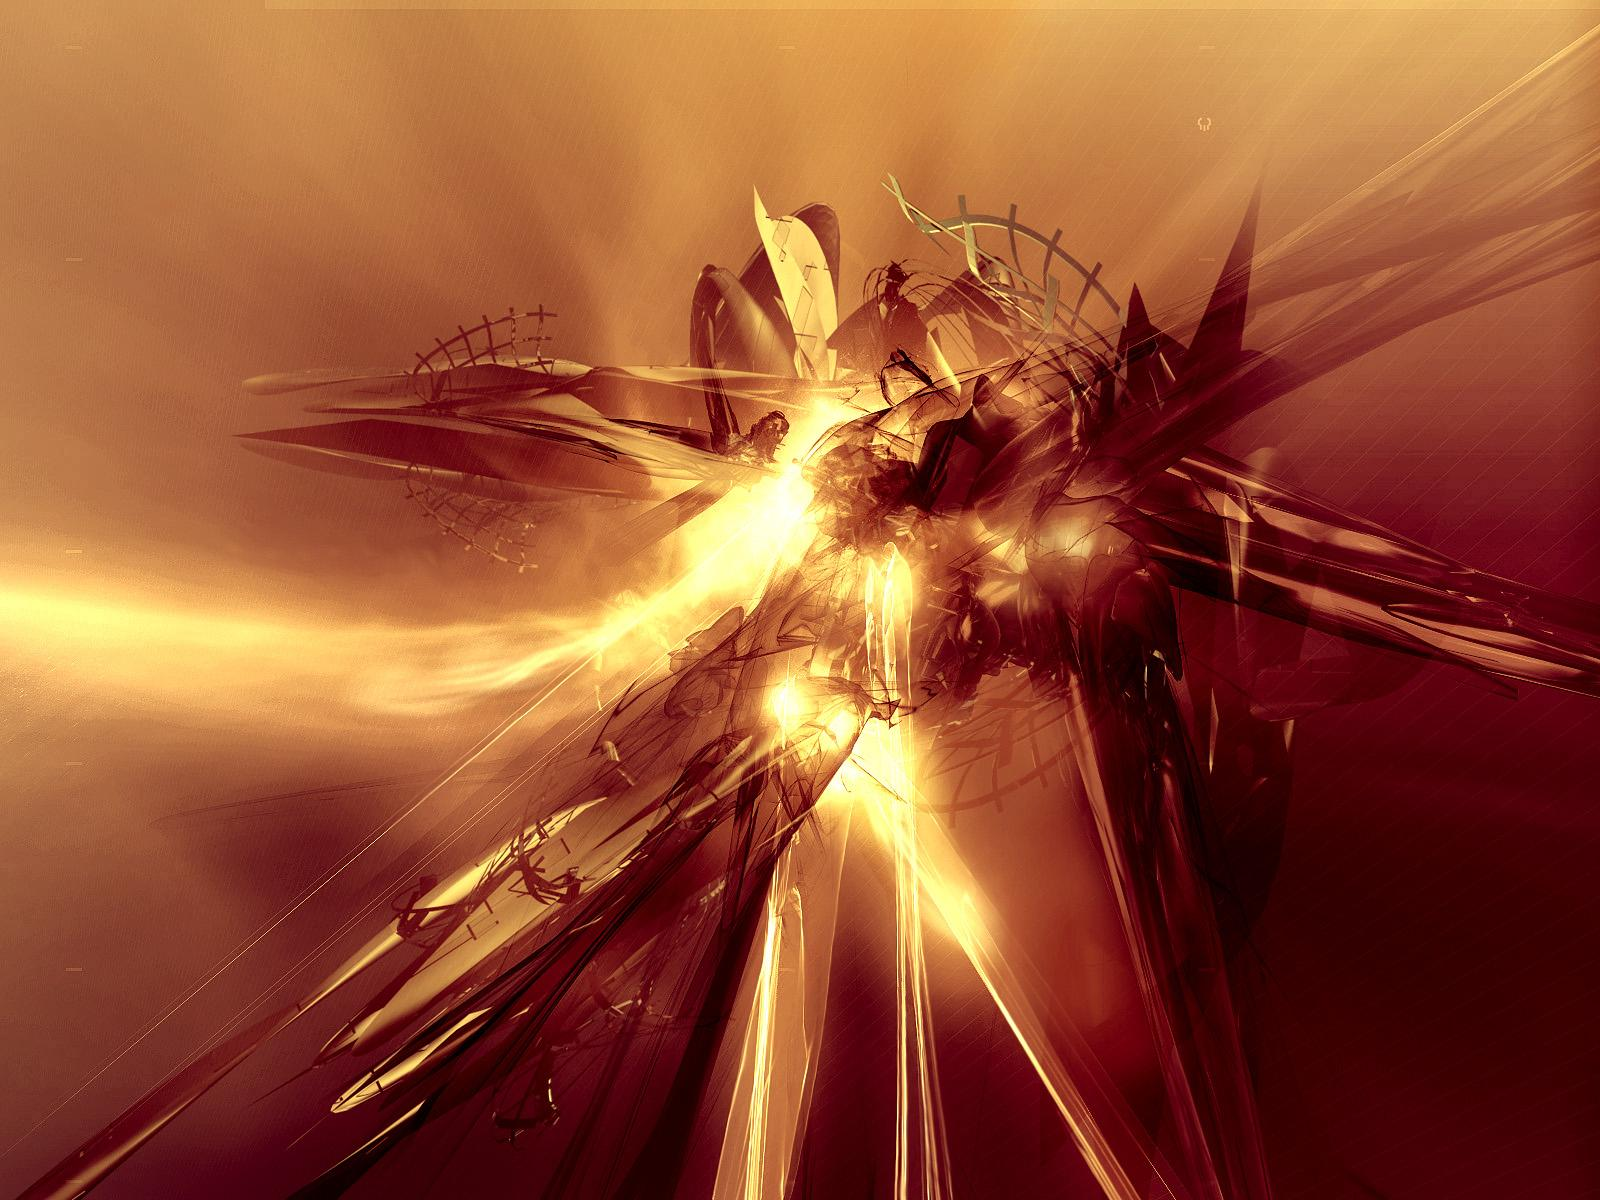 Cool Abstract wallpapers HD quality